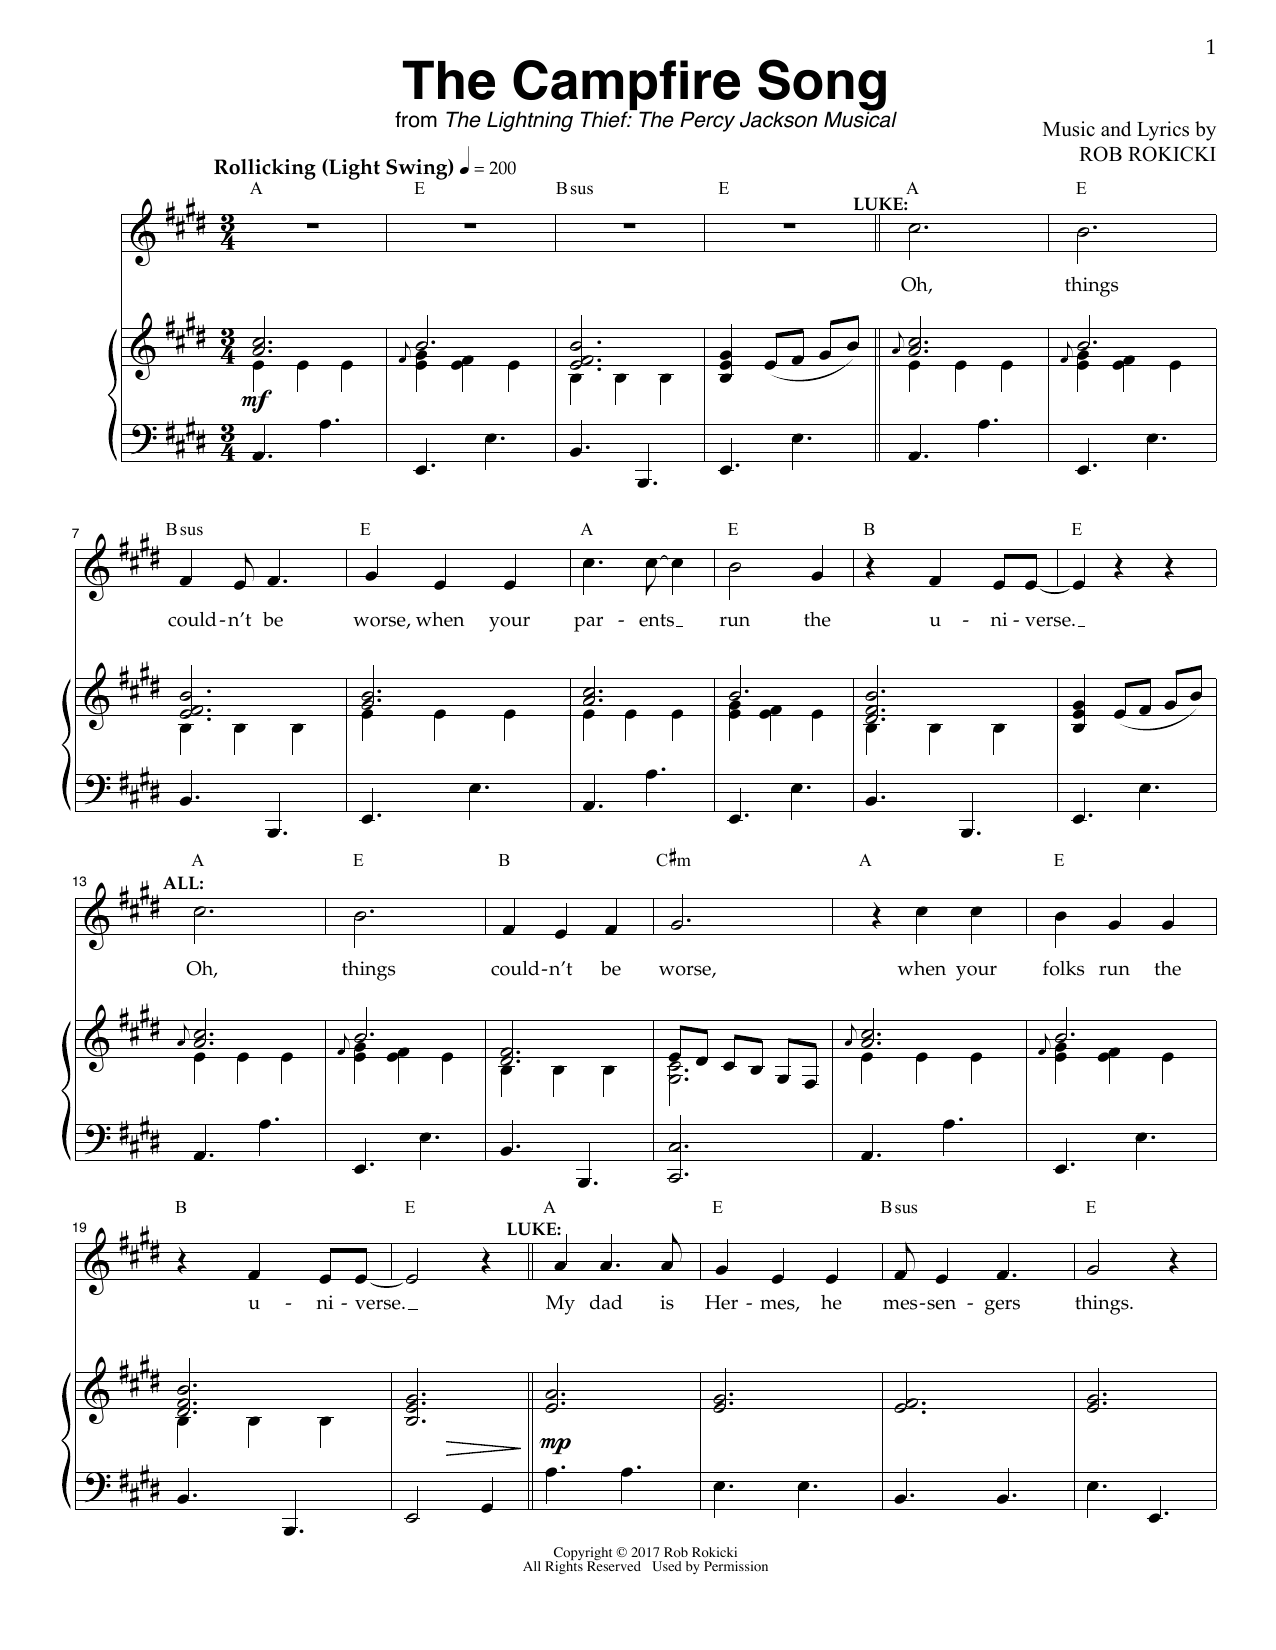 Rob Rokicki The Campfire Song (from The Lightning Thief: The Percy Jackson Musical) sheet music notes and chords